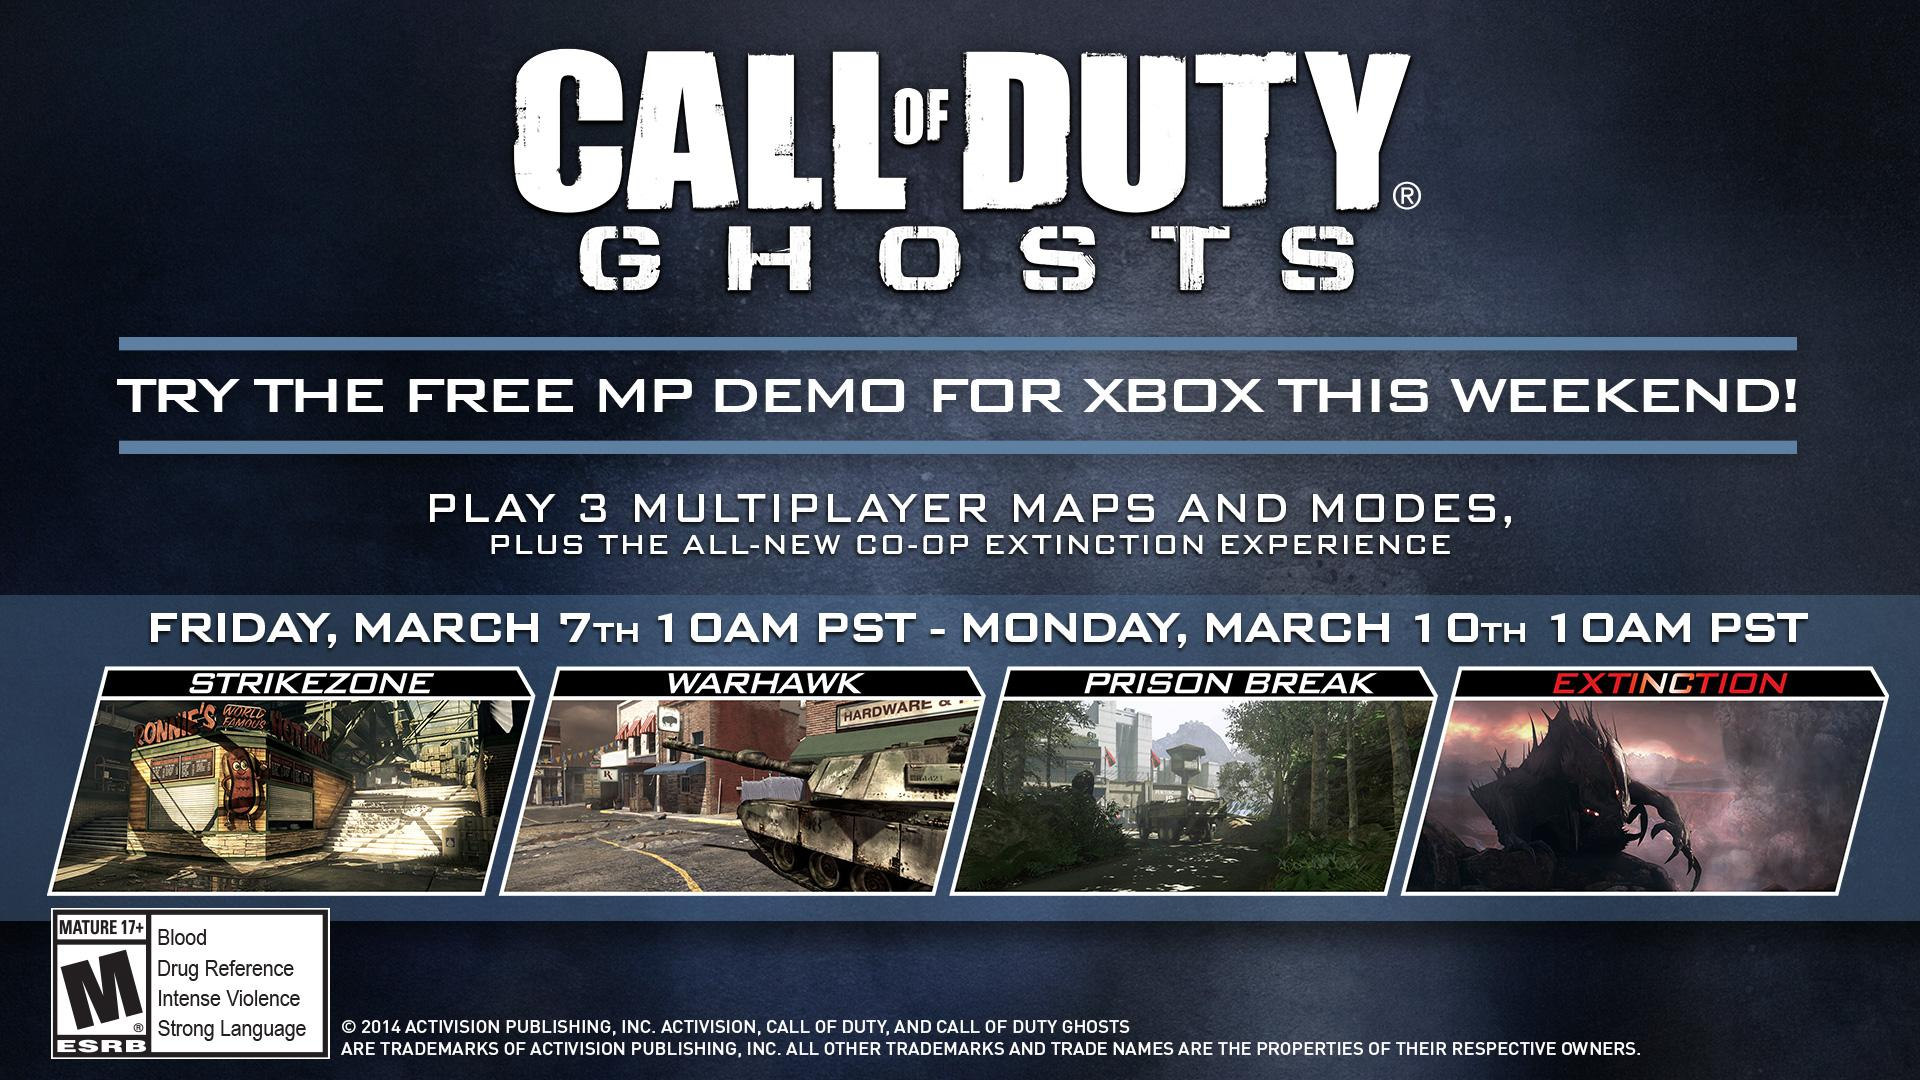 Call of Duty: Ghosts' Free Multiplayer Demo Coming This ... Call Of Duty Ghosts Multiplayer Maps on call of duty 2 maps, call of duty ghost recon, call of duty multiplayer character, call of duty zombie maps, call of duty 3 multiplayer, call of duty 3 maps, call of duty classic xbox 360, call of duty mw2 maps, call duty black ops 2 multiplayer, call of duty black ops ghost, call of duty mw3 maps, call of duty in order, call of duty multiplayer wallpaper, call of duty head, cod ghosts maps, call of duty ghost gameplay part 1, call of duty mw3 ghost, call of duty modern warfare 2 characters, call of duty maps list,